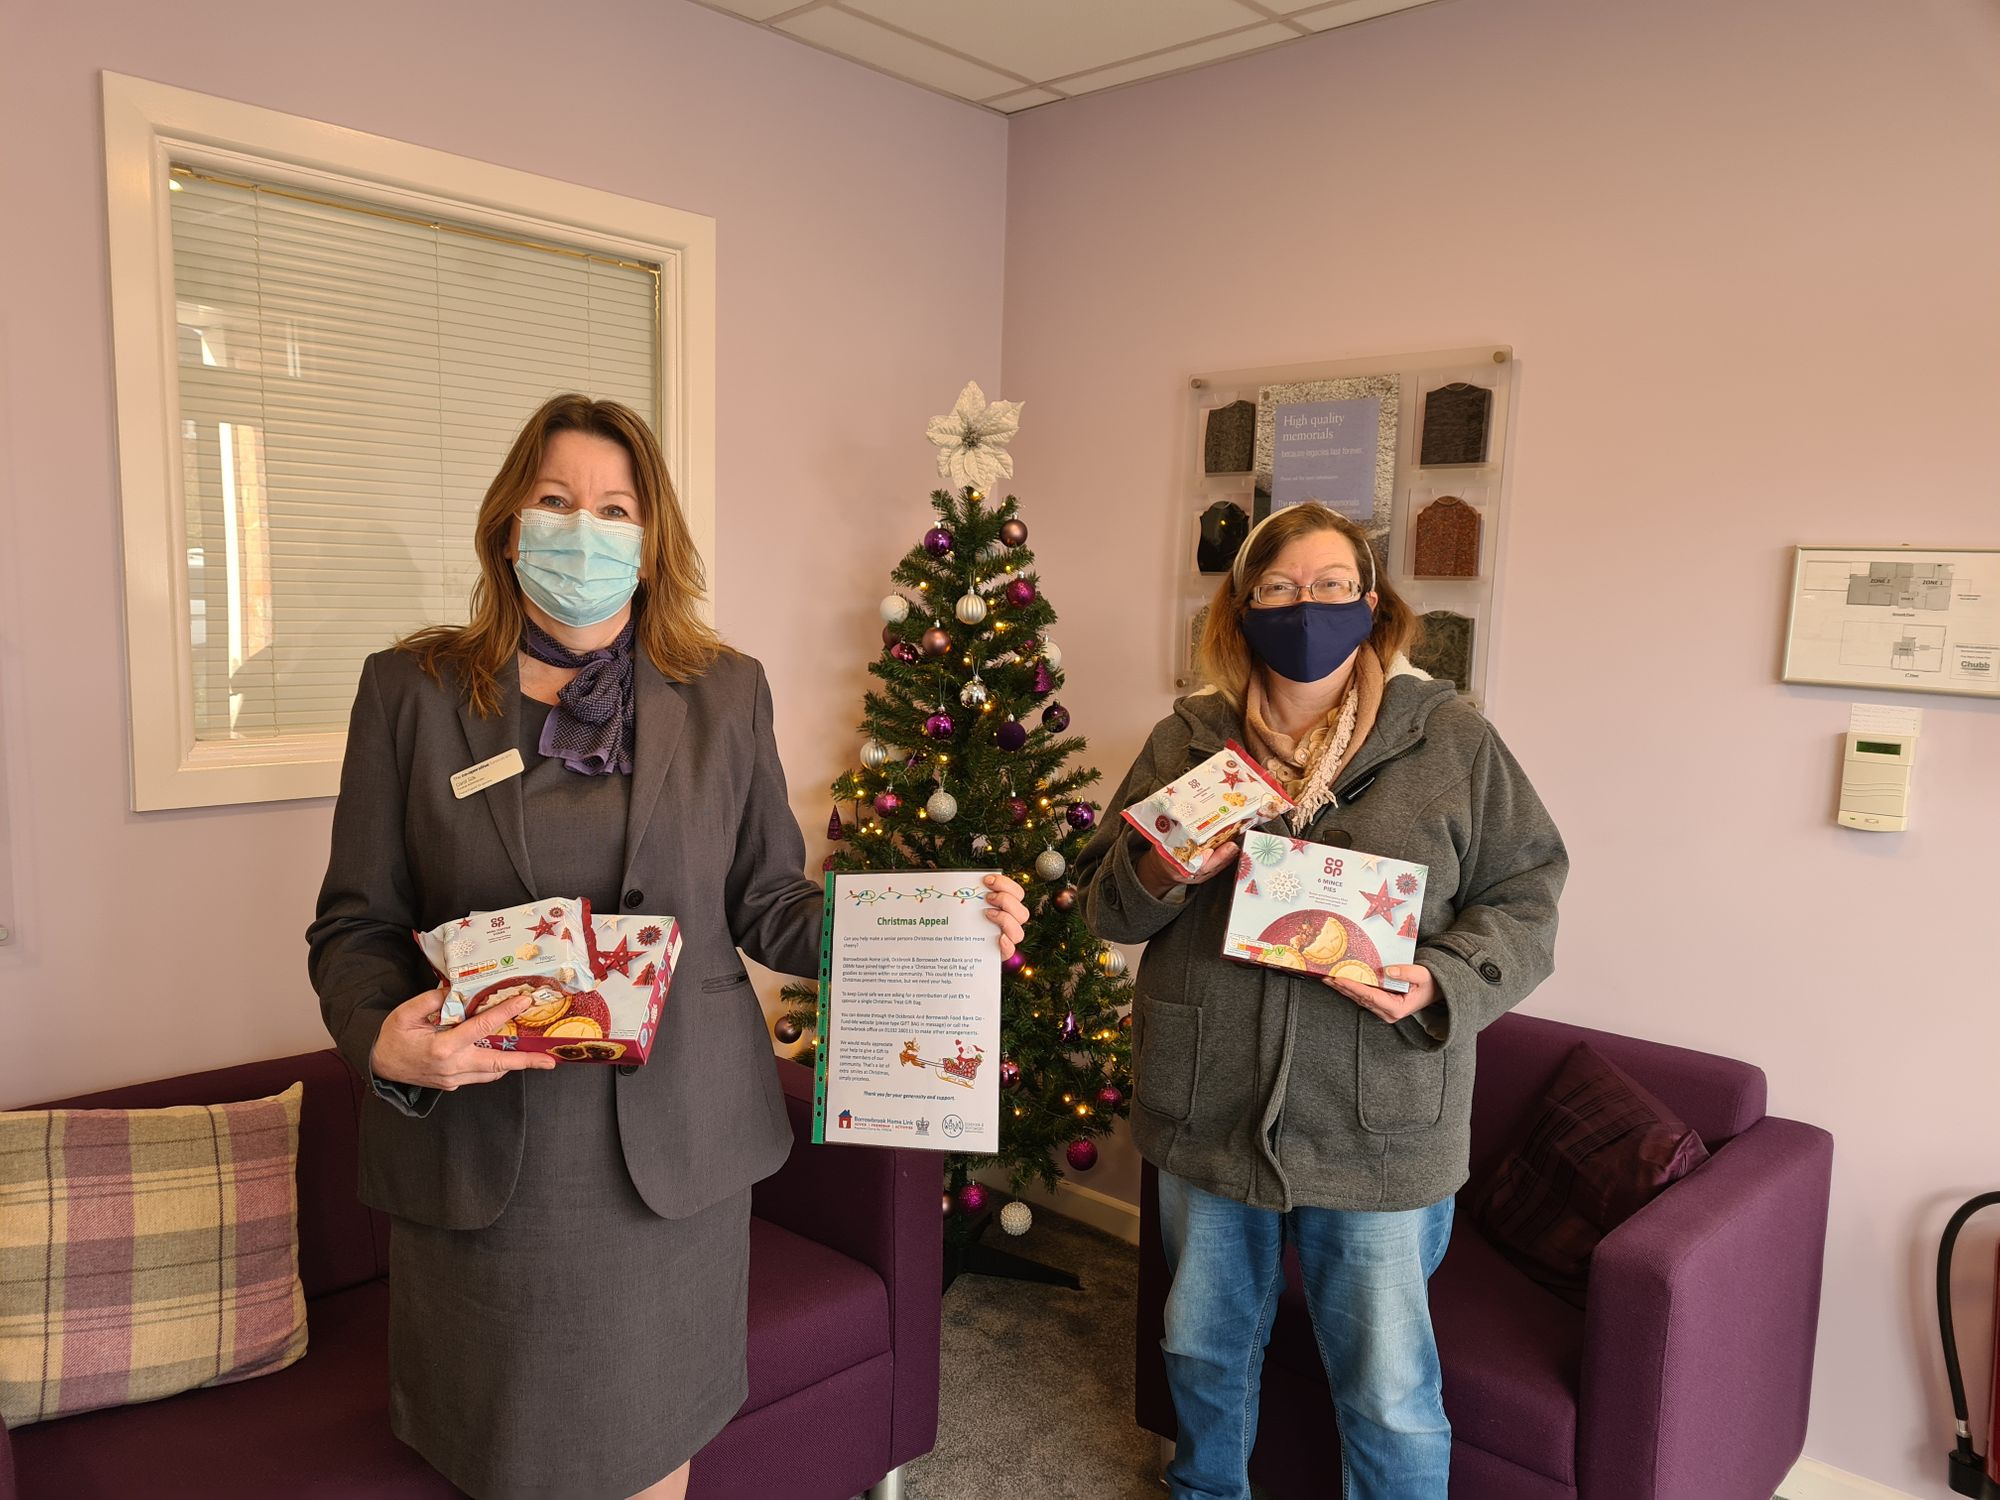 Borrowash funeral home supports local charity's Christmas appeal bringing festive cheer